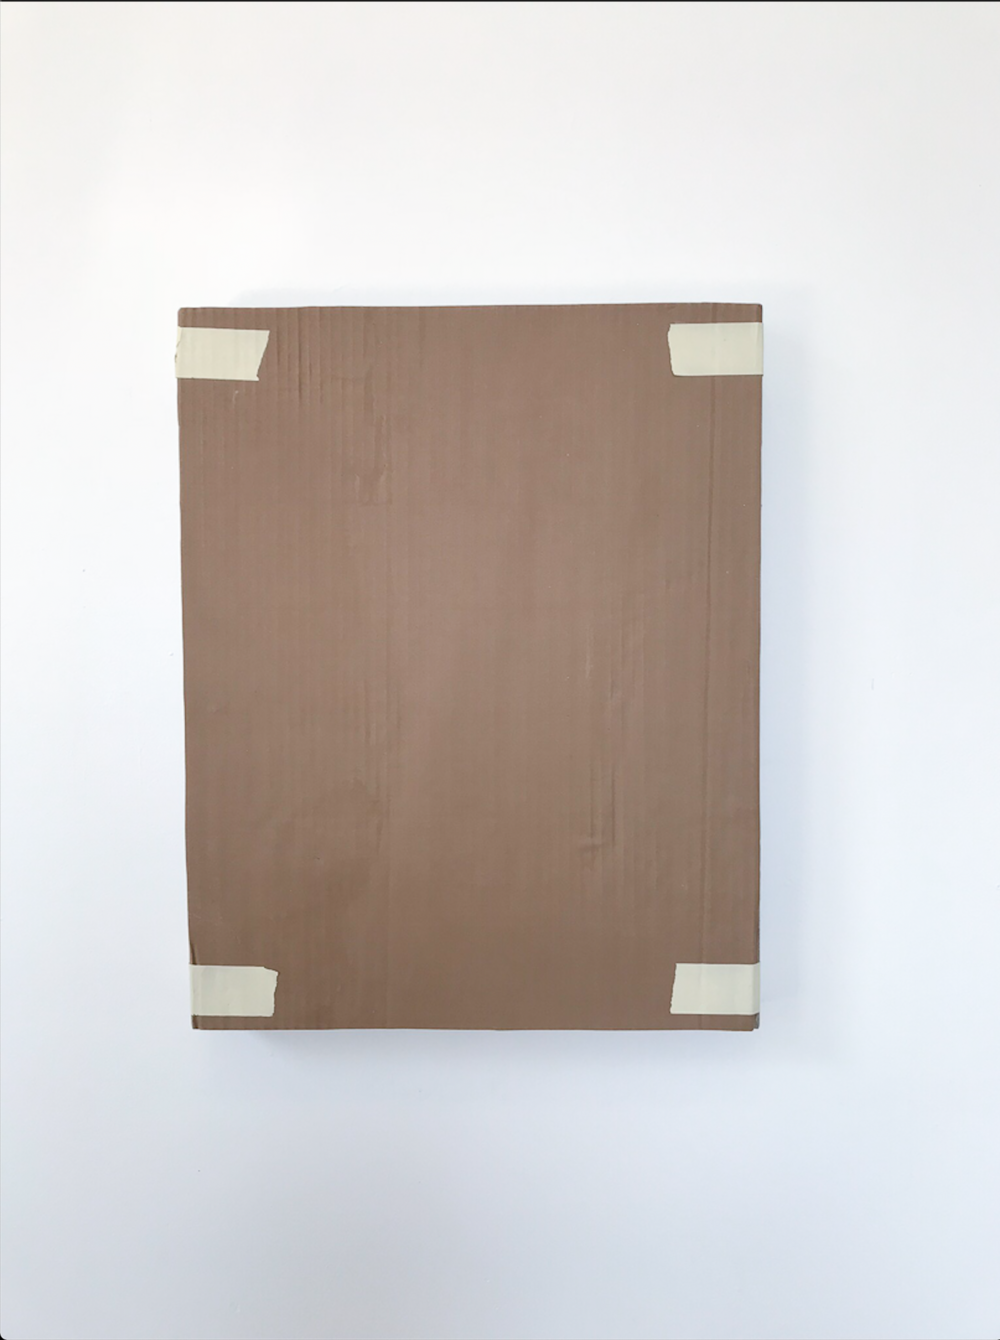 """Monochrome with Cardboard and Masking Tape , 2018, Acrylique sur toile de lin, 20"""" x 16""""."""